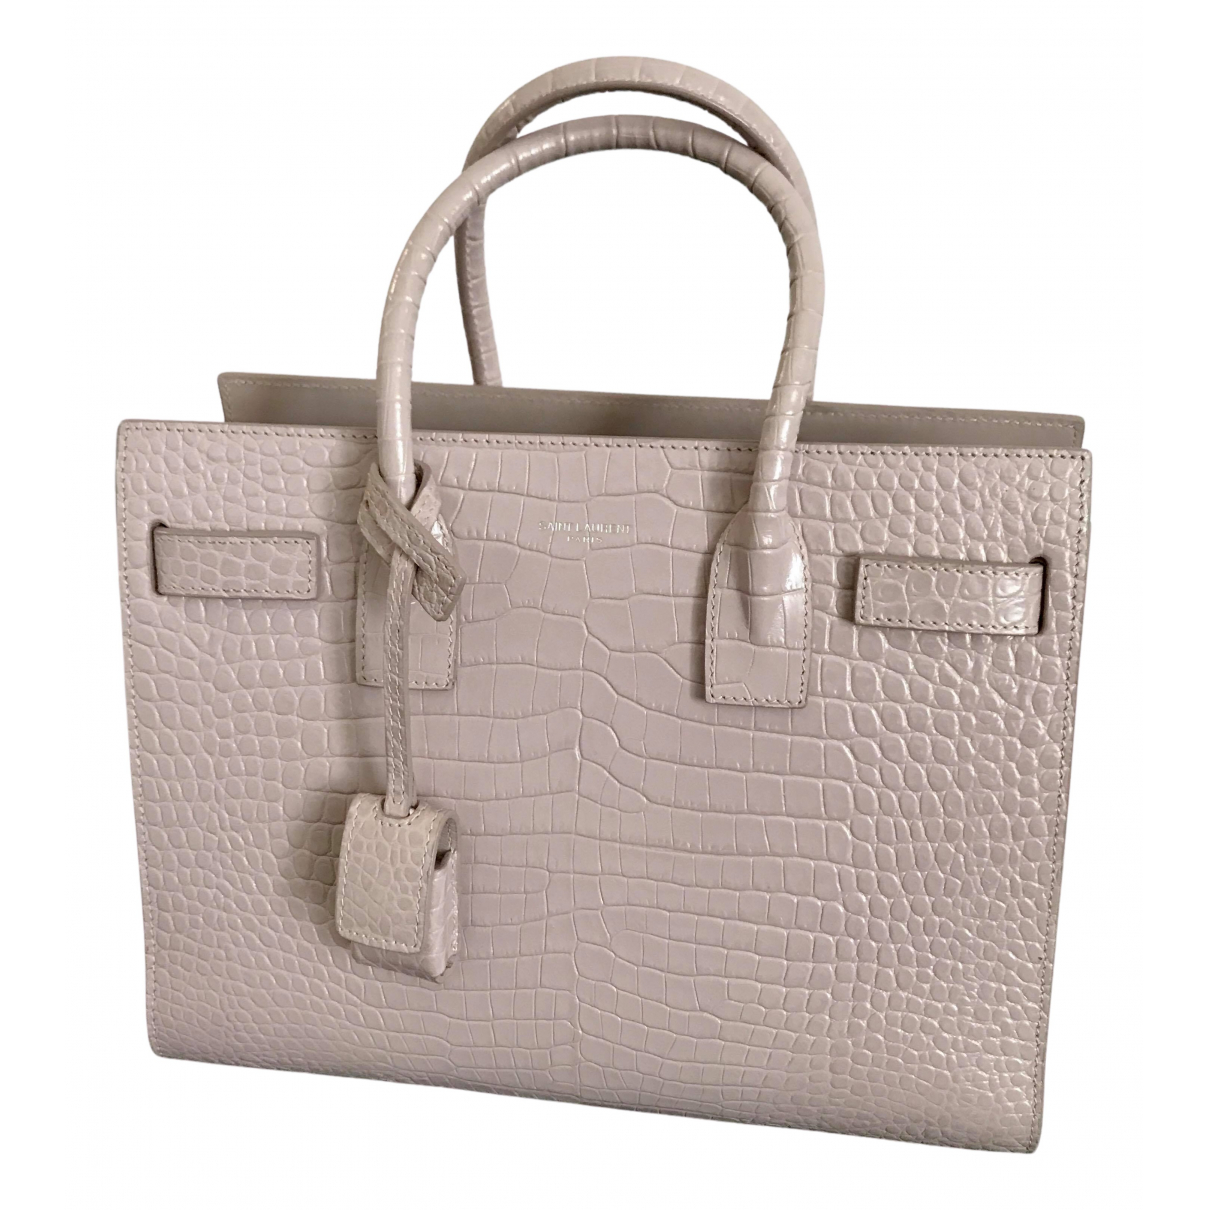 Saint Laurent Sac de Jour Handtasche in  Rosa Leder